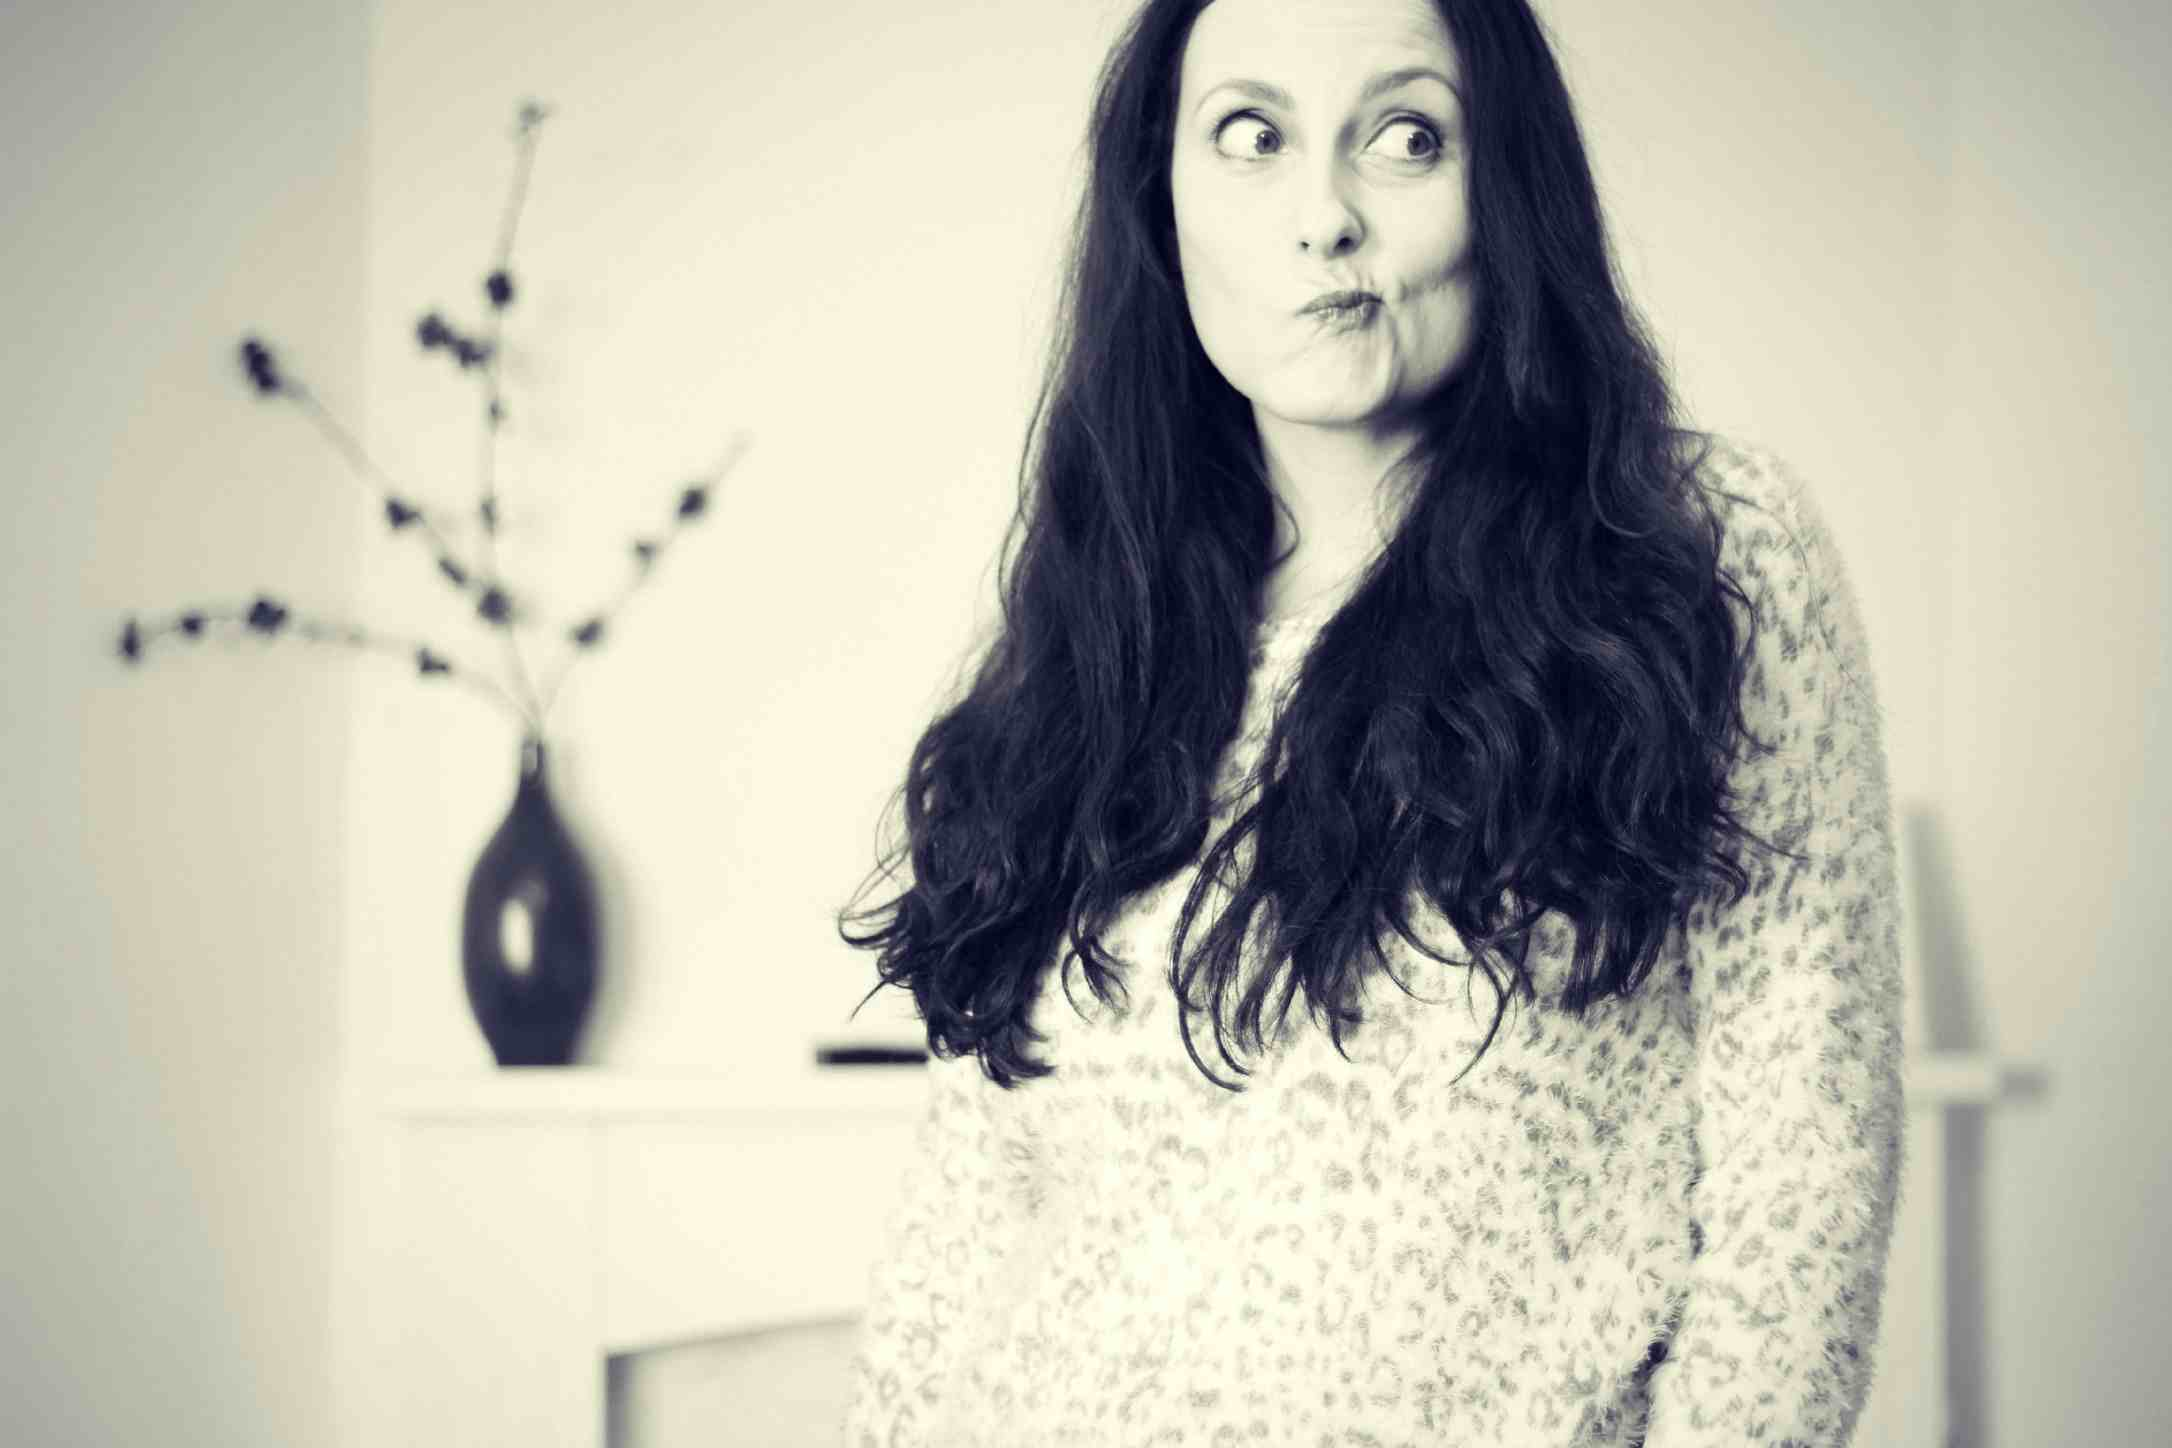 How blogging has changed my life. From teen mum to business woman http://www.amytreasure.com